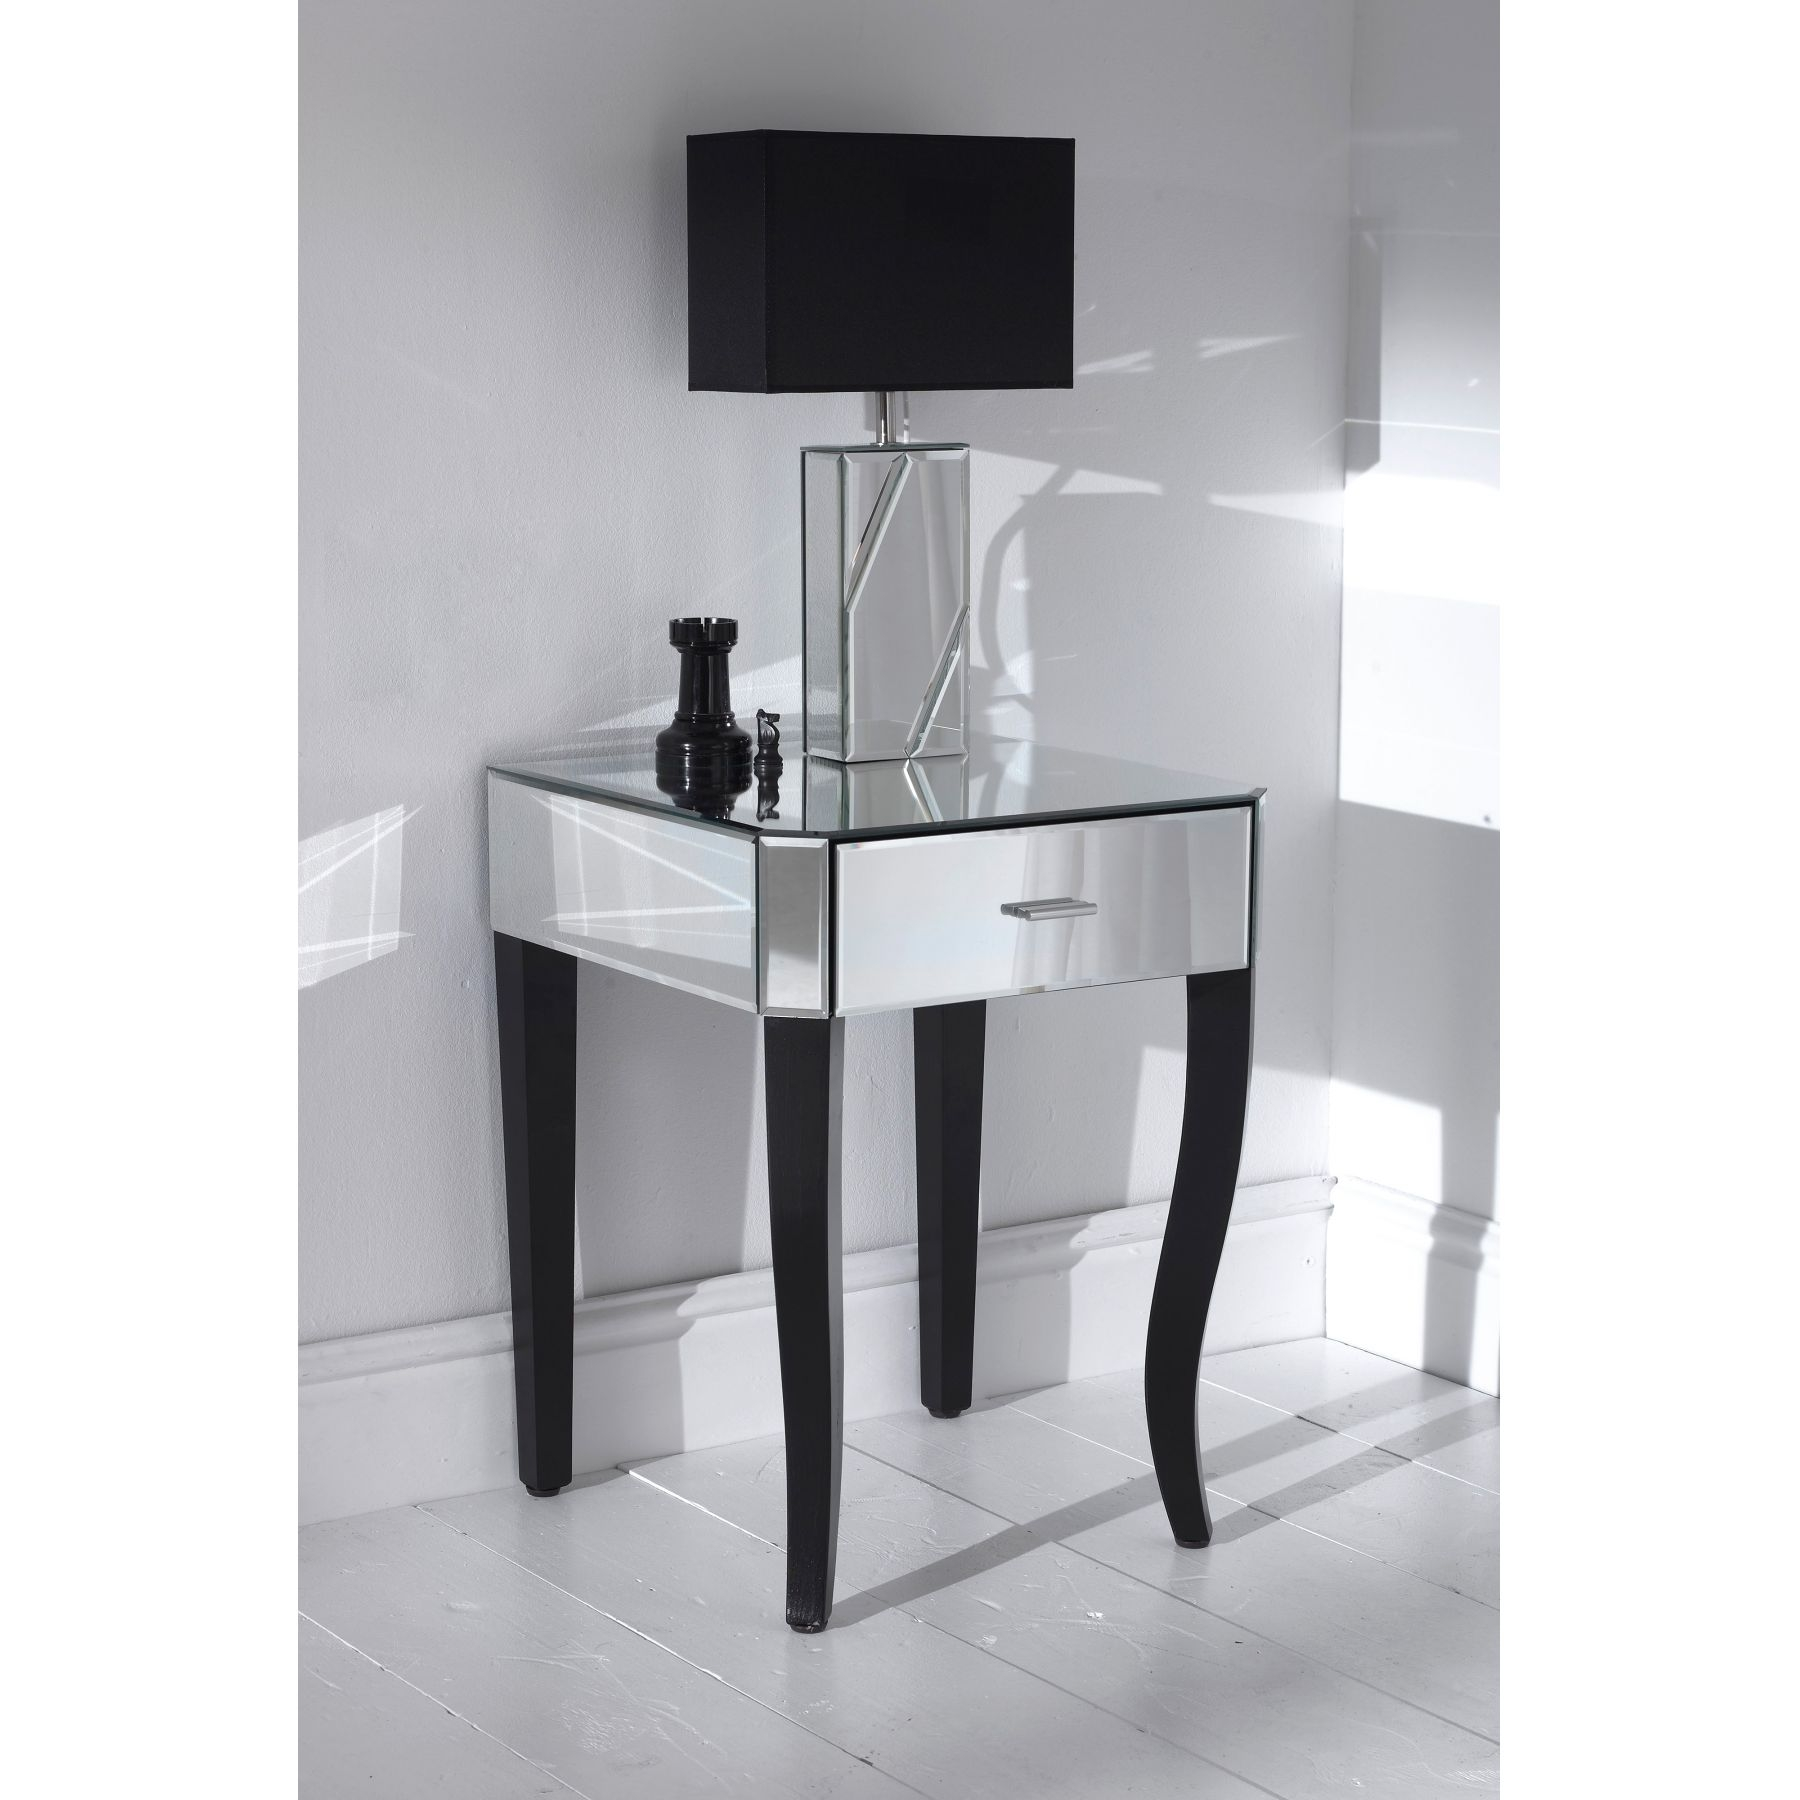 Featured Image of Small Table Mirror